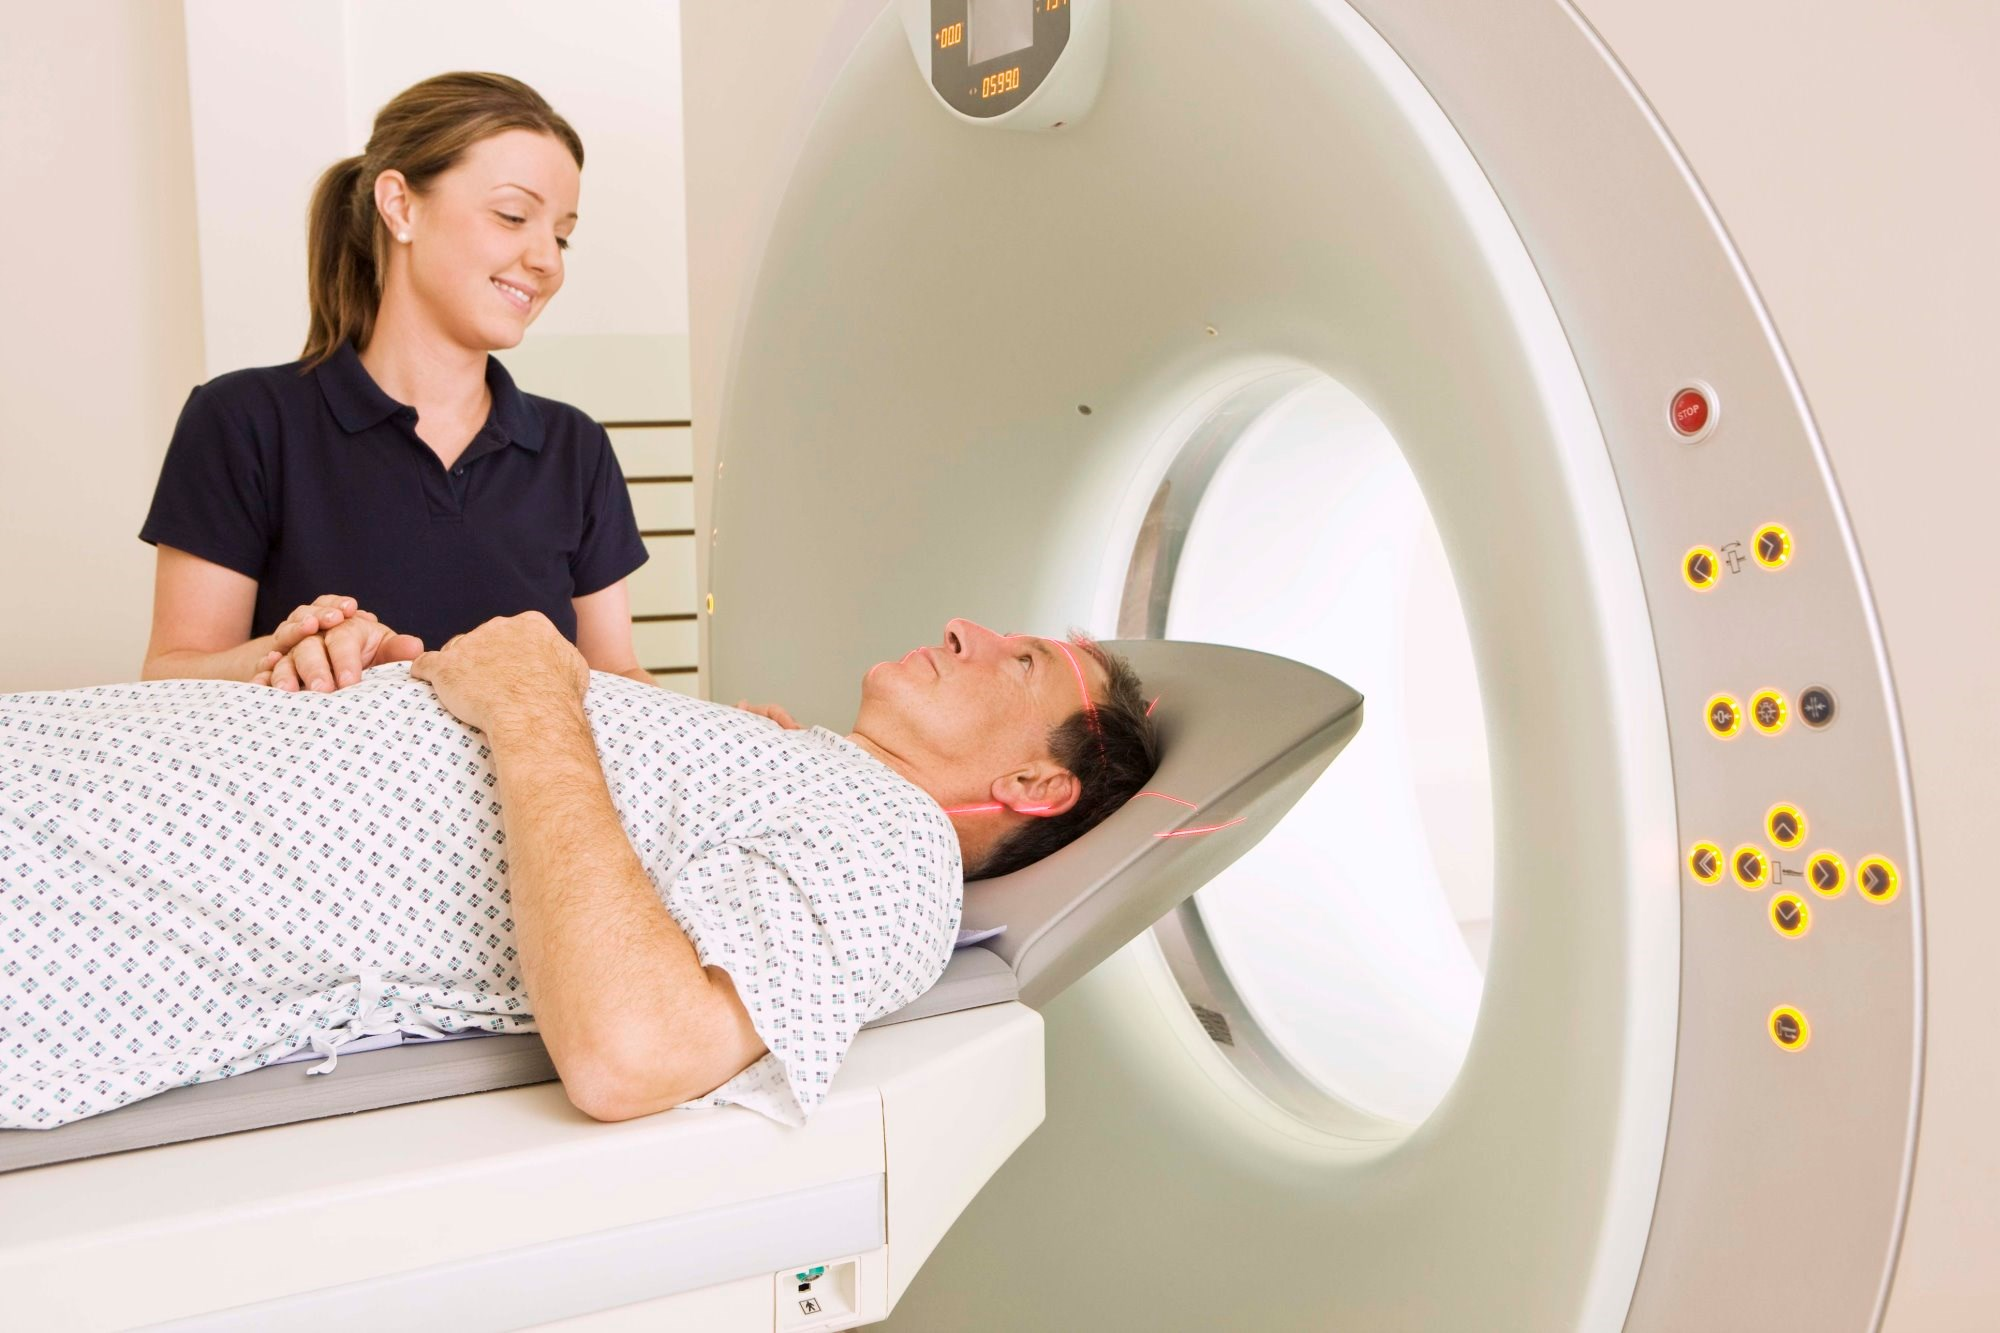 Prostate Biopsy May Be Avoidable If MRI Findings Are Negative